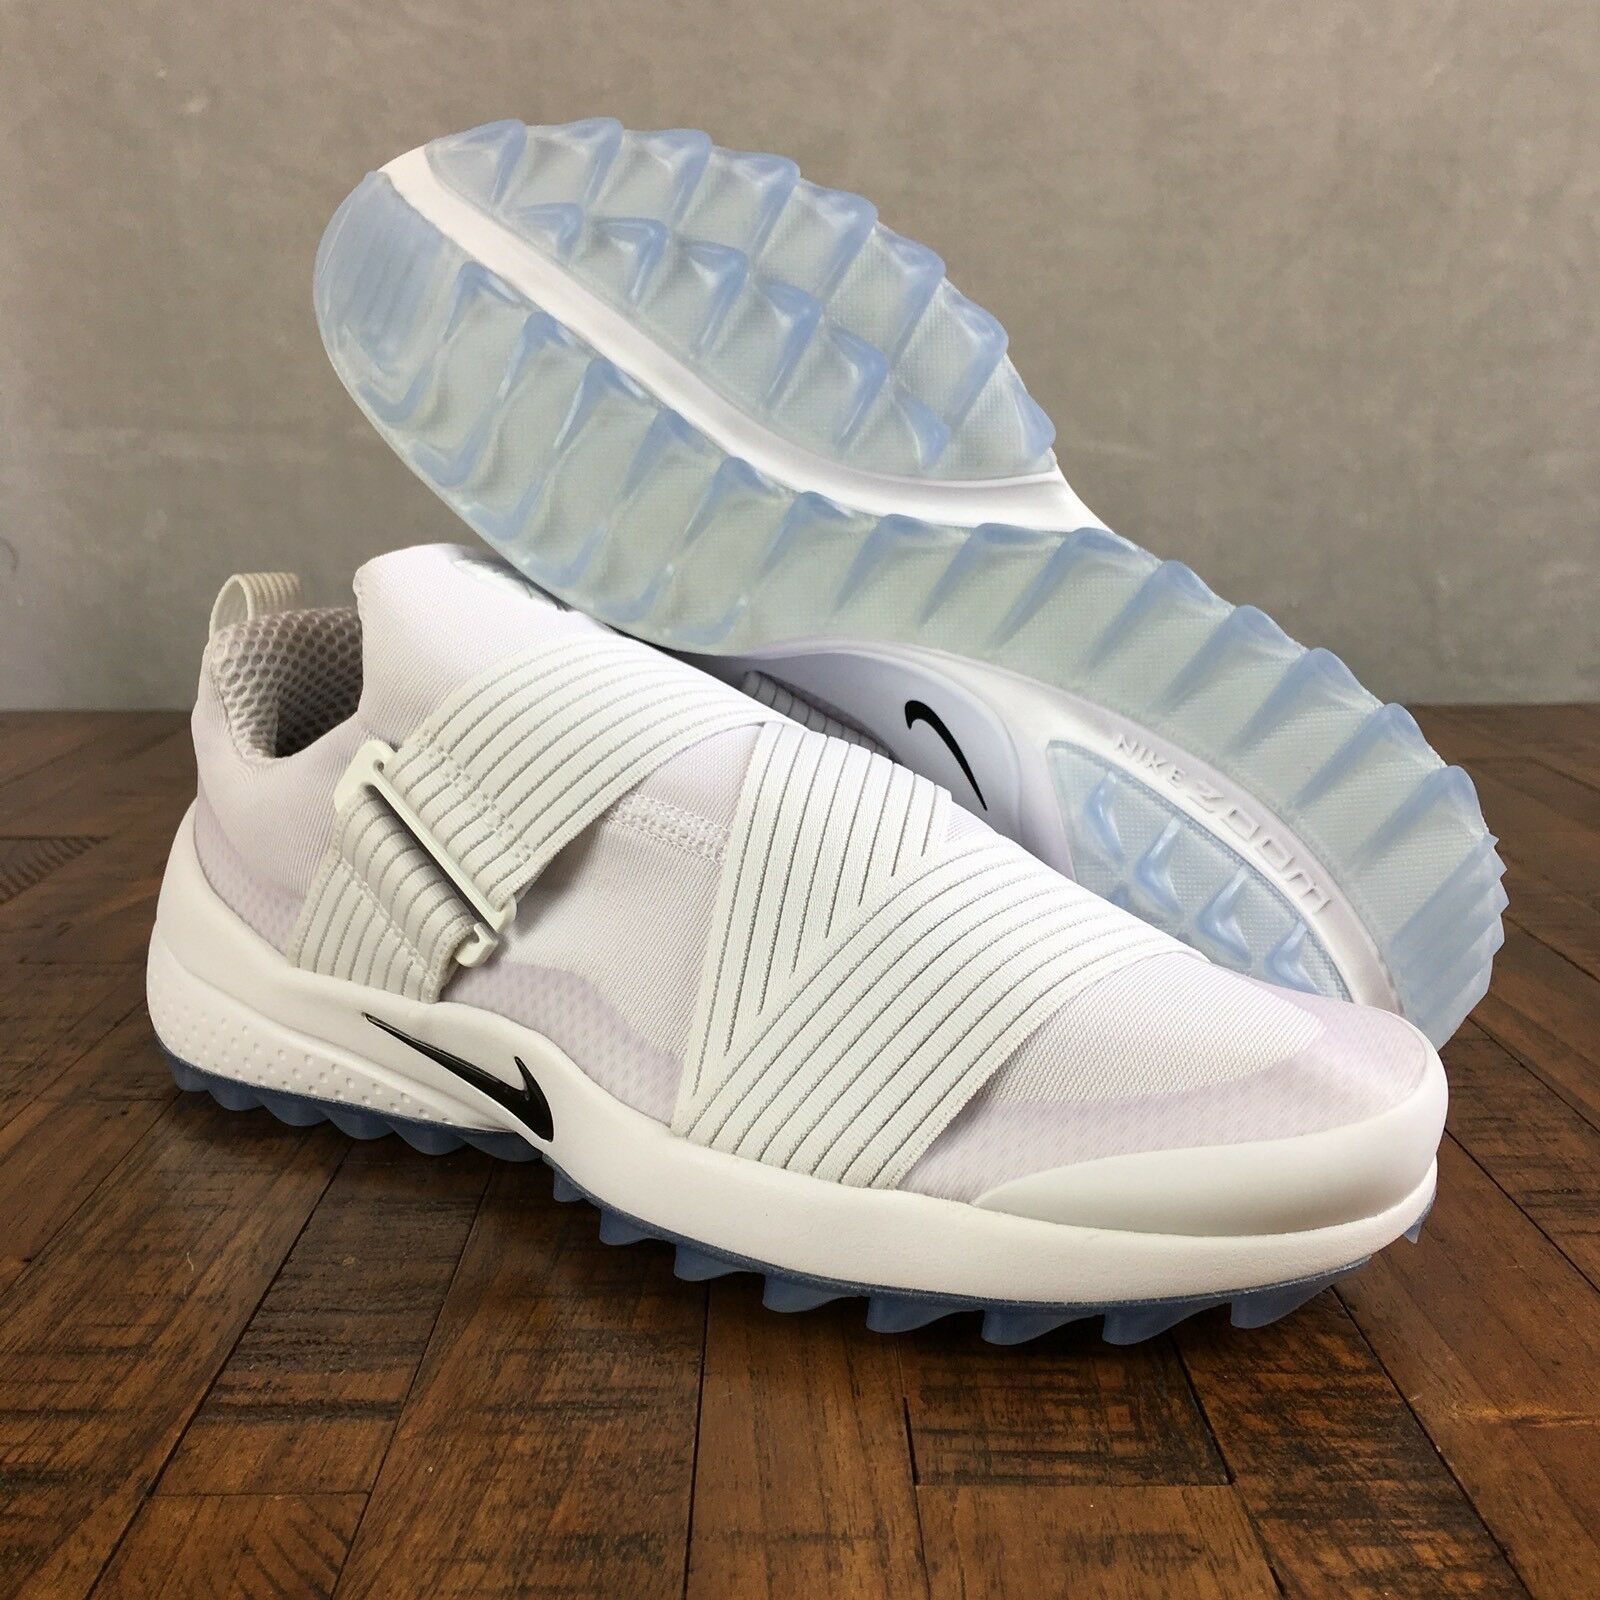 Nike Air Zoom Gimme Spikeless Golf Shoes White Oreo 849955-100 Mens Comfortable The most popular shoes for men and women Casual wild